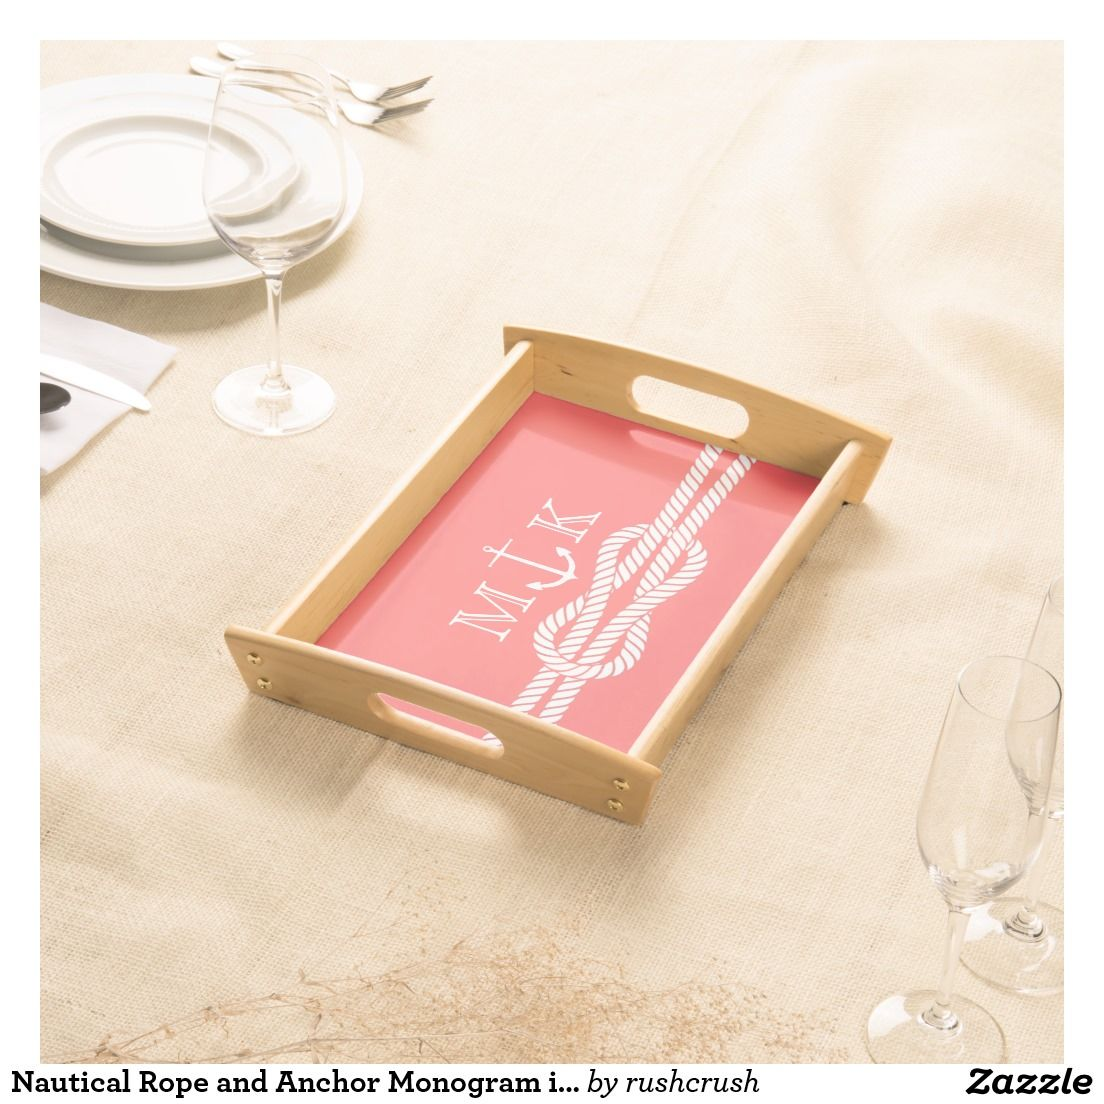 Nautical Rope and Anchor Monogram in Coral Serving Tray